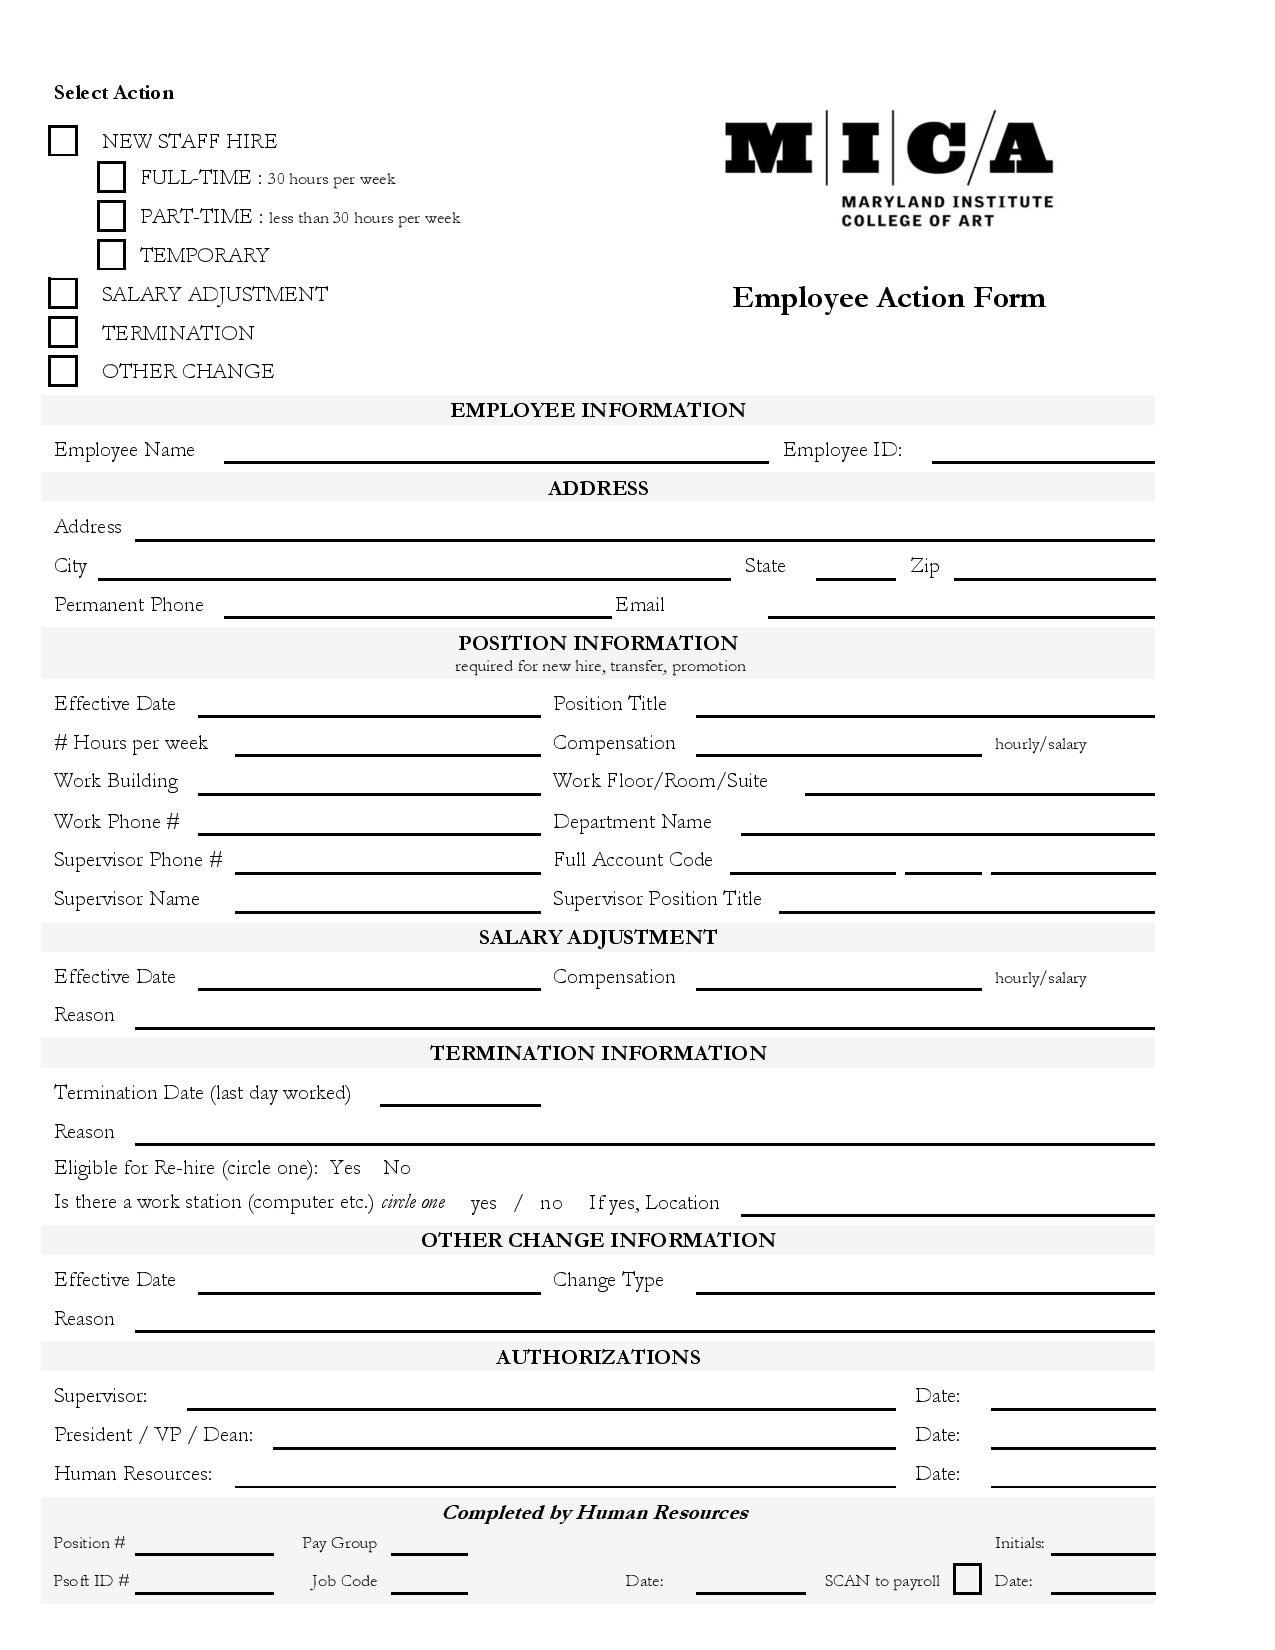 employee action form page 0011